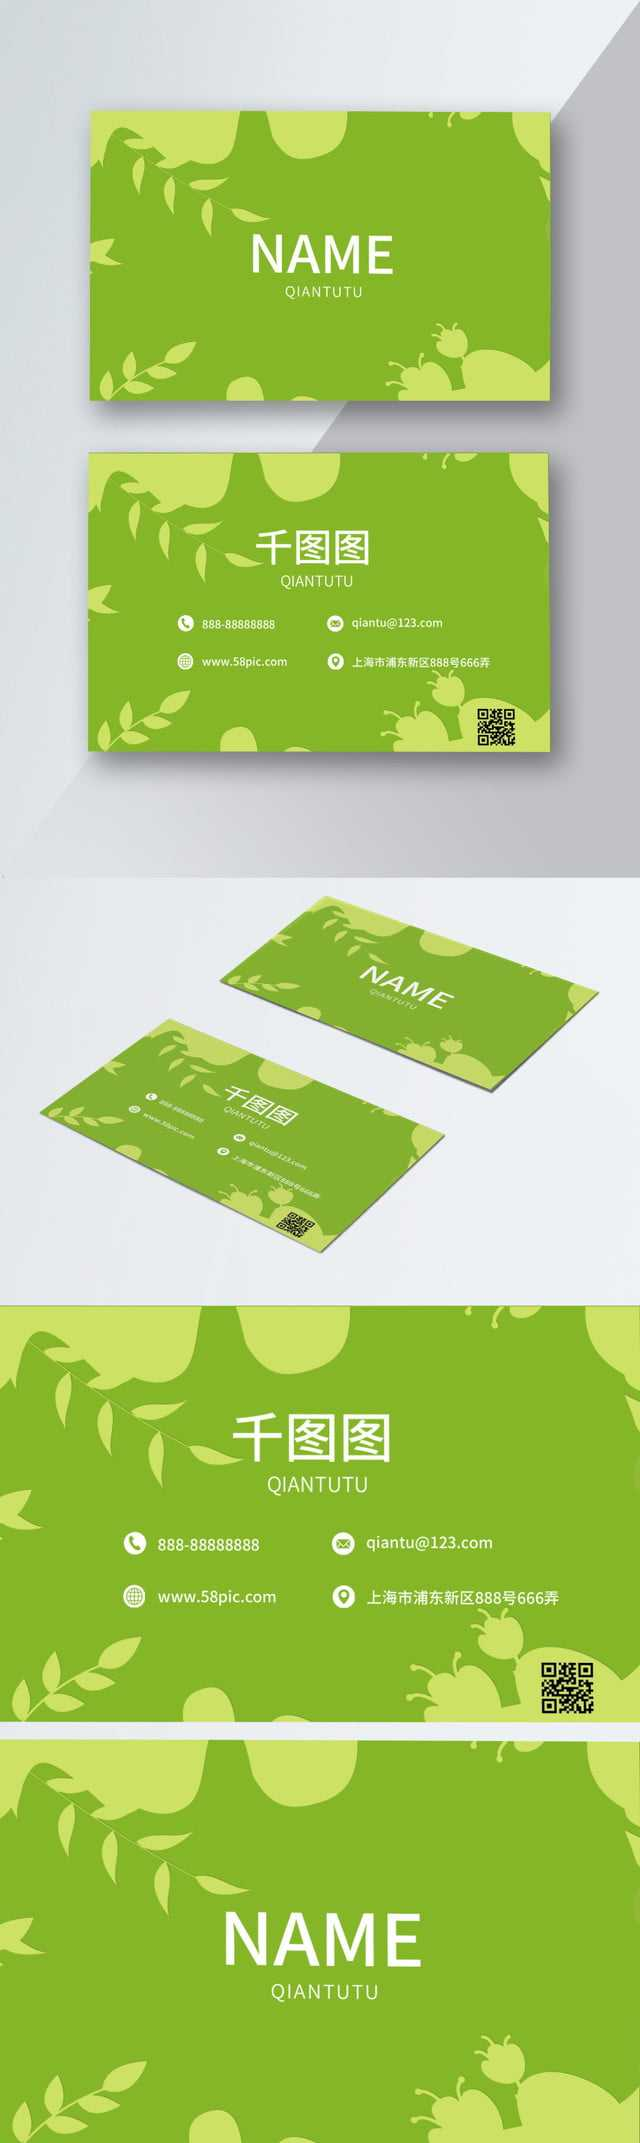 Small Fresh Business Card Personal Business Card Qr Code In Qr Code Business Card Template